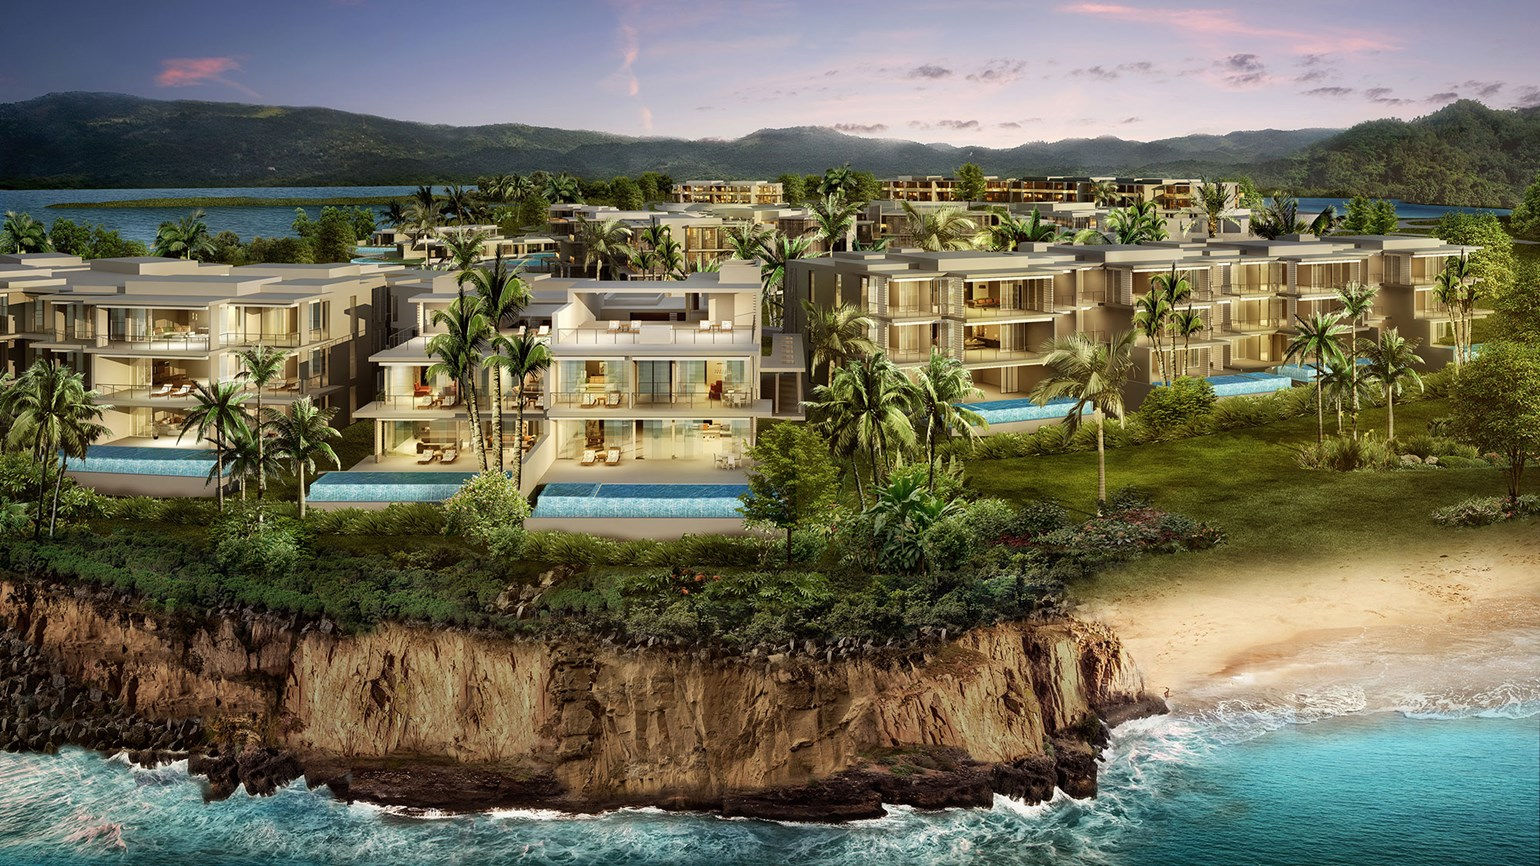 The Riviera Nayarit is getting ritzier